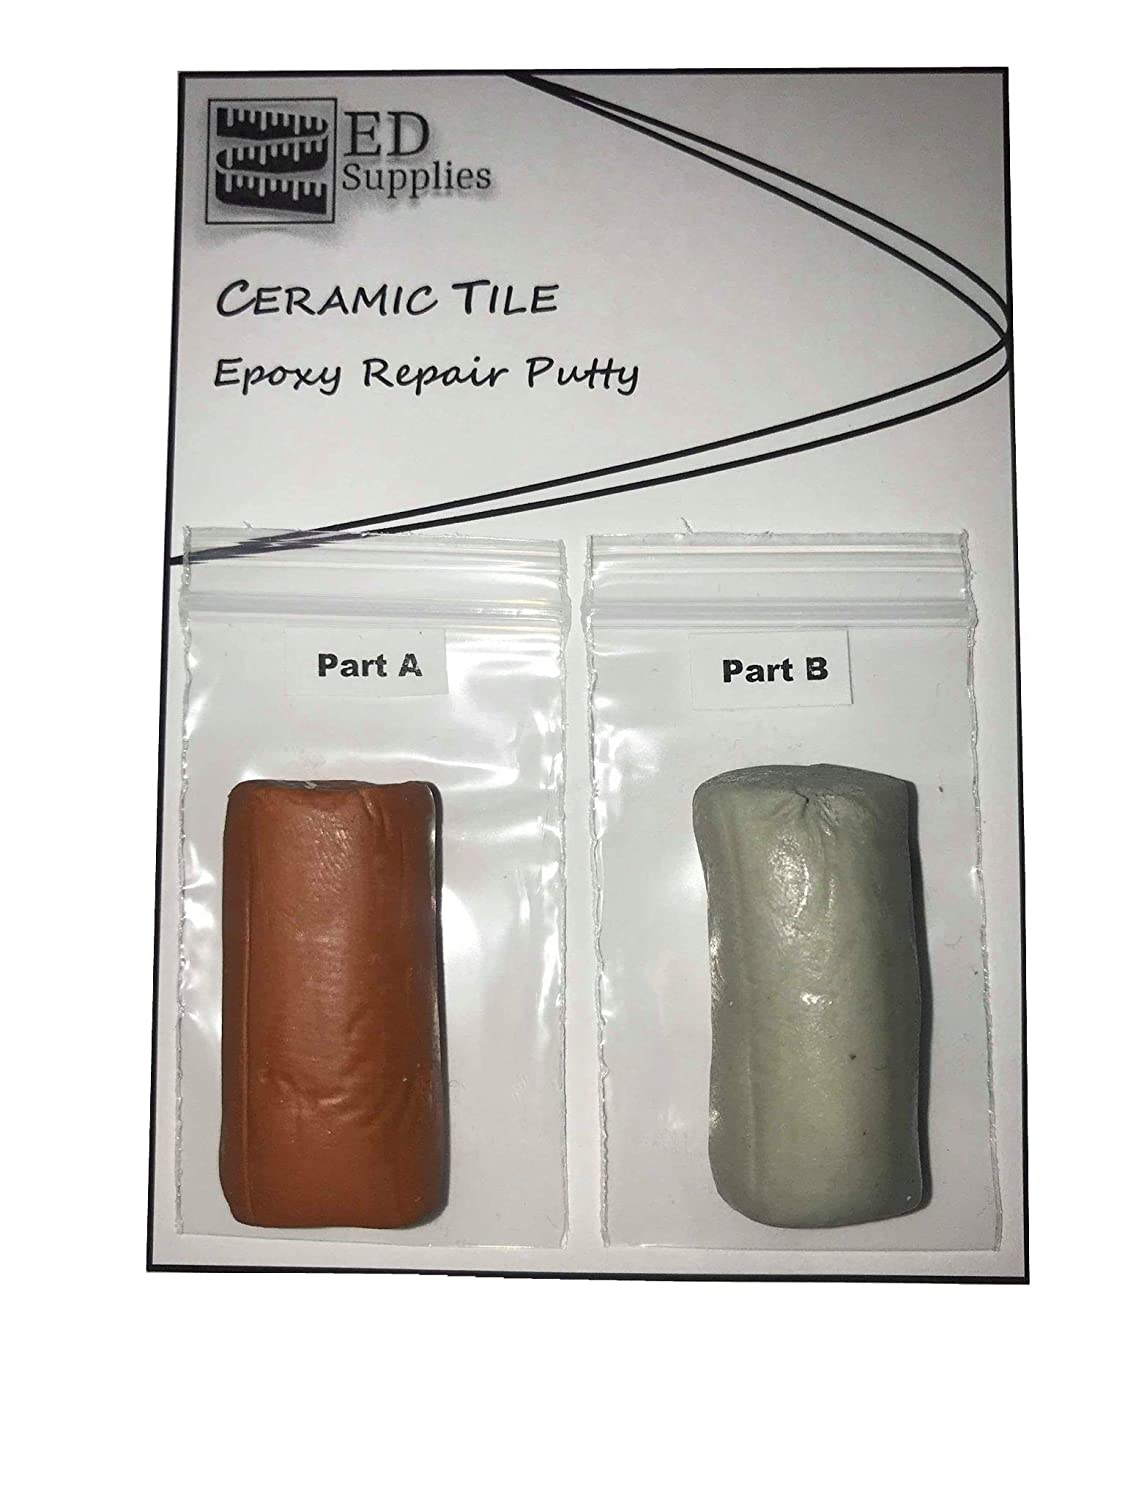 38g Cracks Terracotta Floor /& Wall Ceramic Tile Epoxy Repair Putty Defects /& Similar Damage Repairs Chips